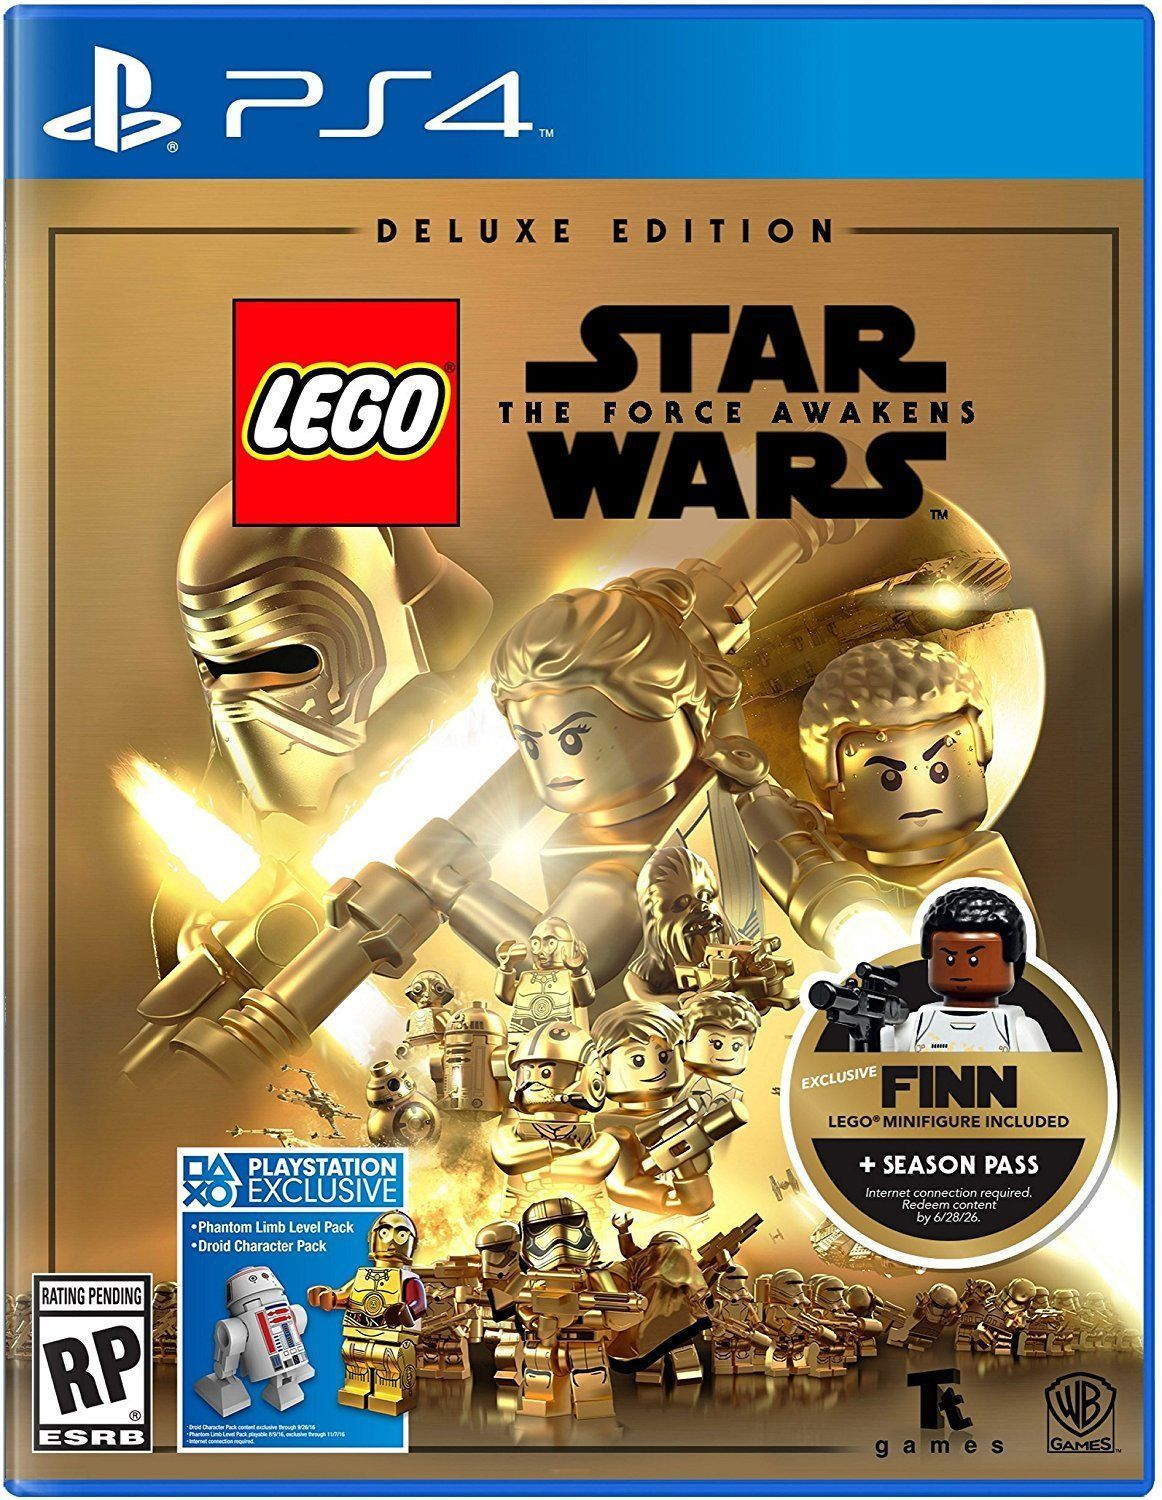 Primary image for NEW Lego Star Wars The Force Awakens Deluxe Edition PS4 Game Finn PlayStation 4